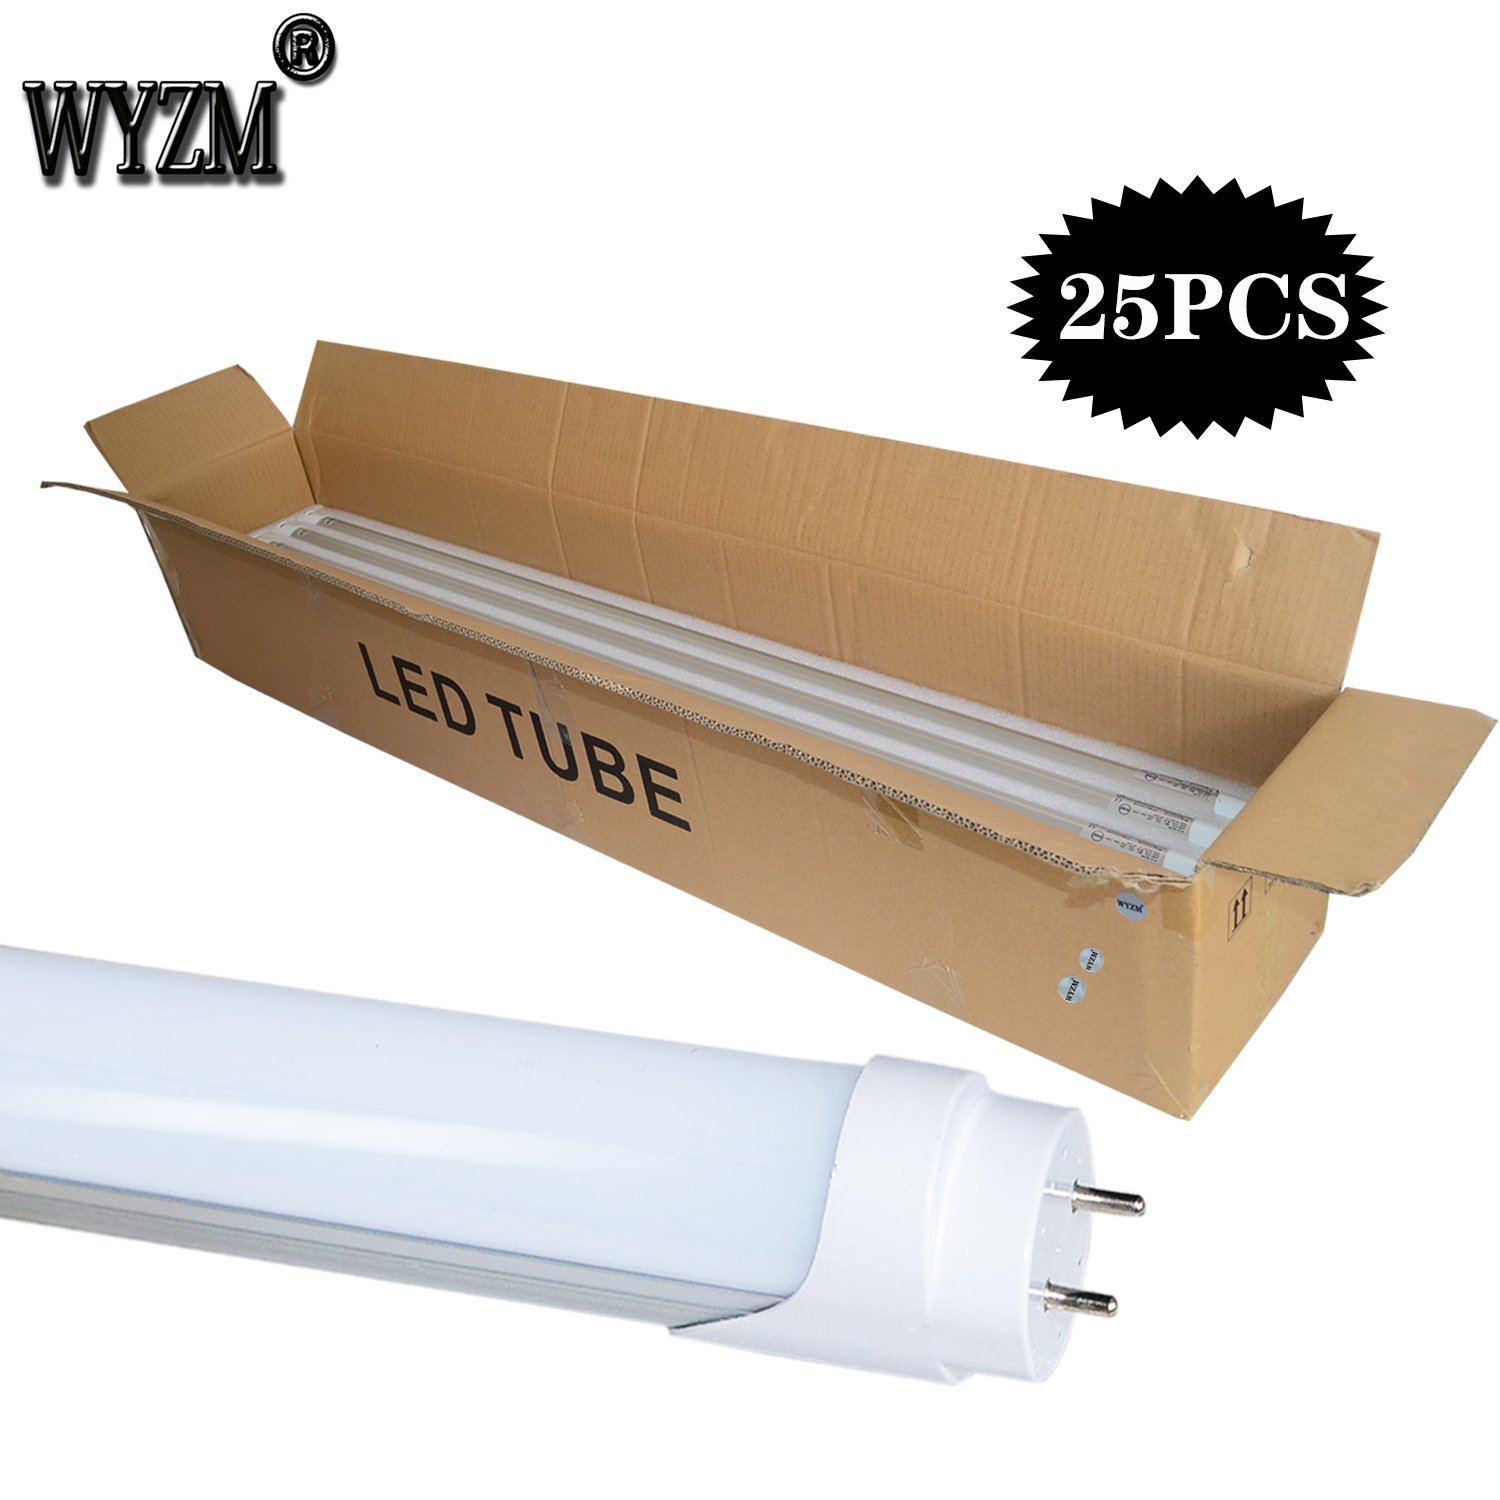 25 Pack of WYZM 20Watt T8 LED Bulbs 4 Foot,40W Fluorescent Tube Replacement,5500K Daylight White,Double End Power (25PACK 4FT 5500K) by WYZM (Image #7)